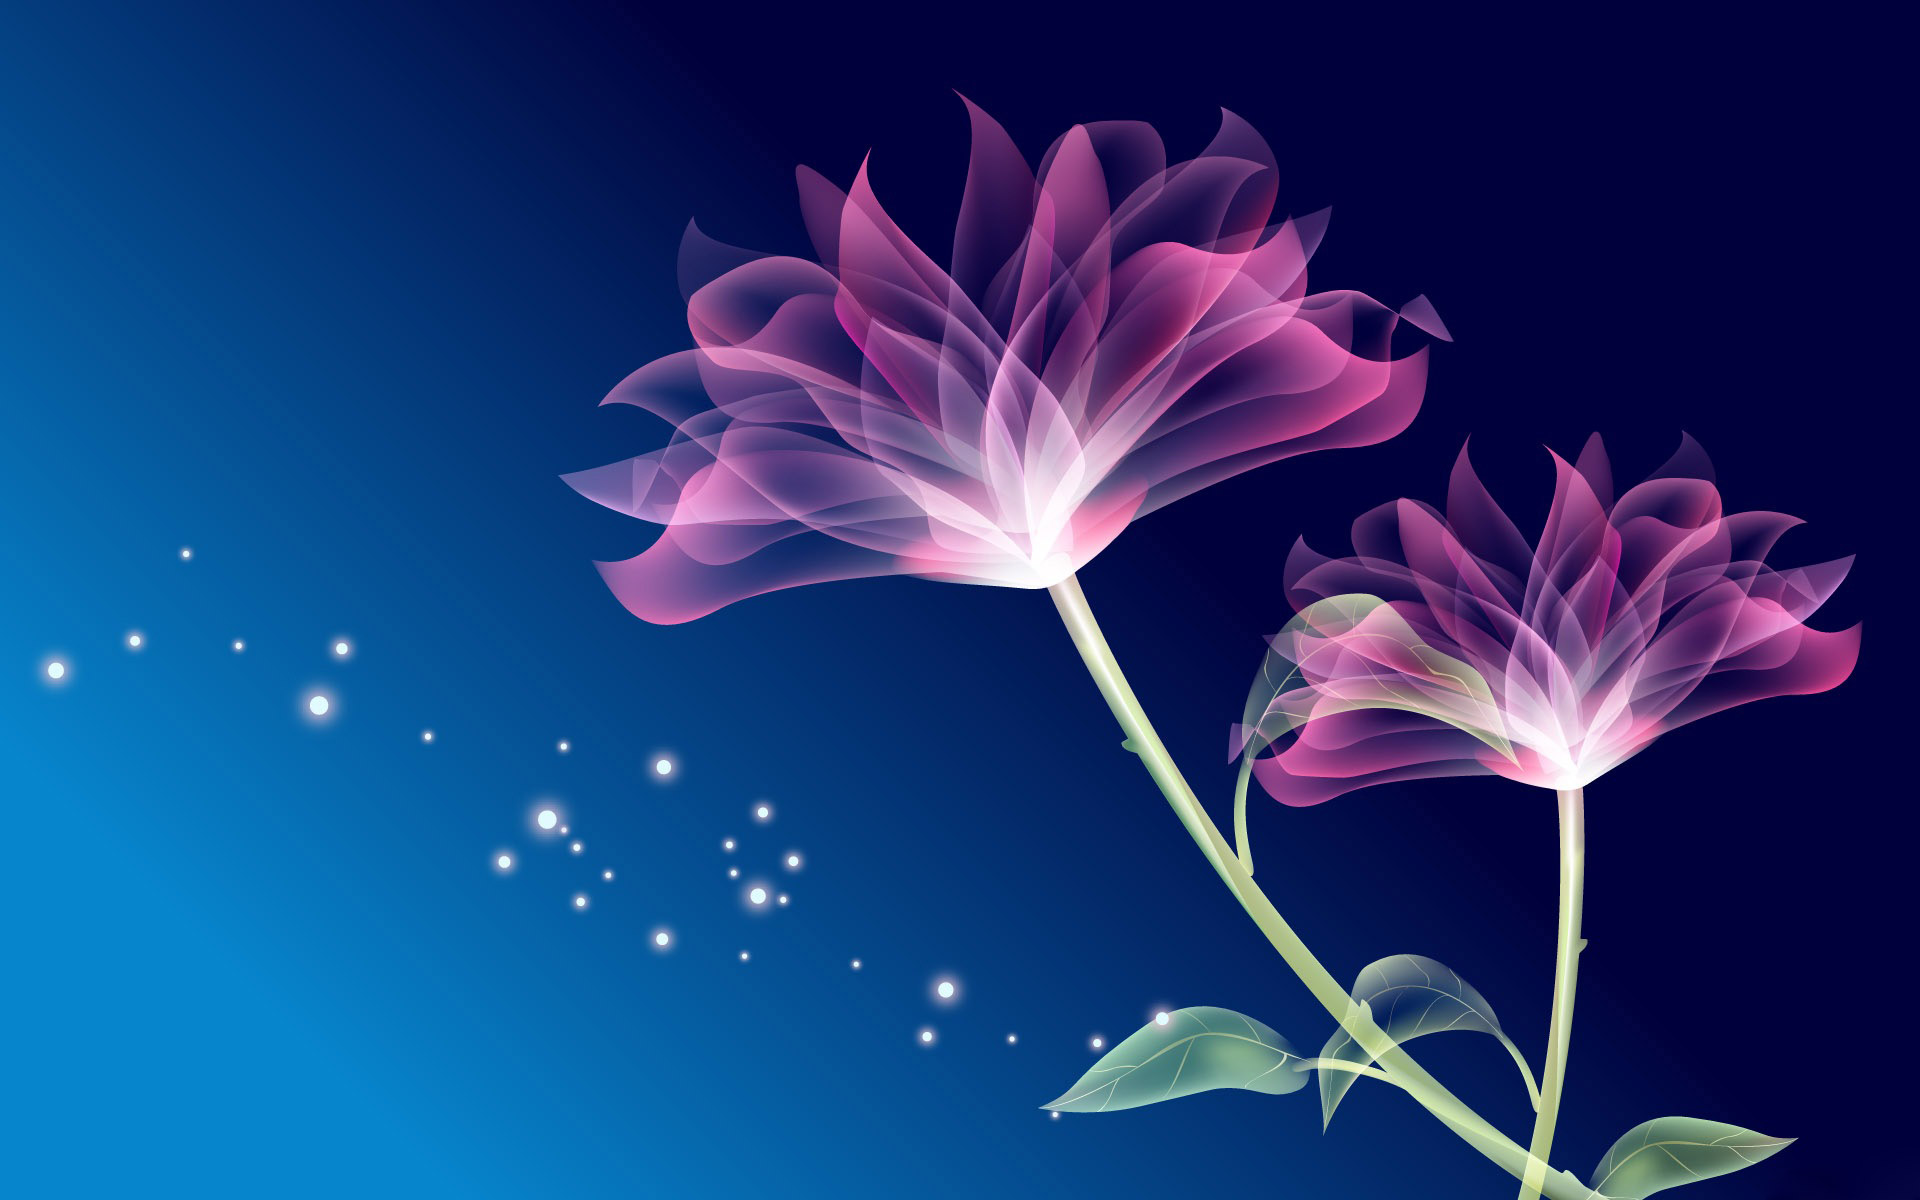 Cool abstract flower wallpaper hd pixelstalk cool abstract flower wallpaper hd mightylinksfo